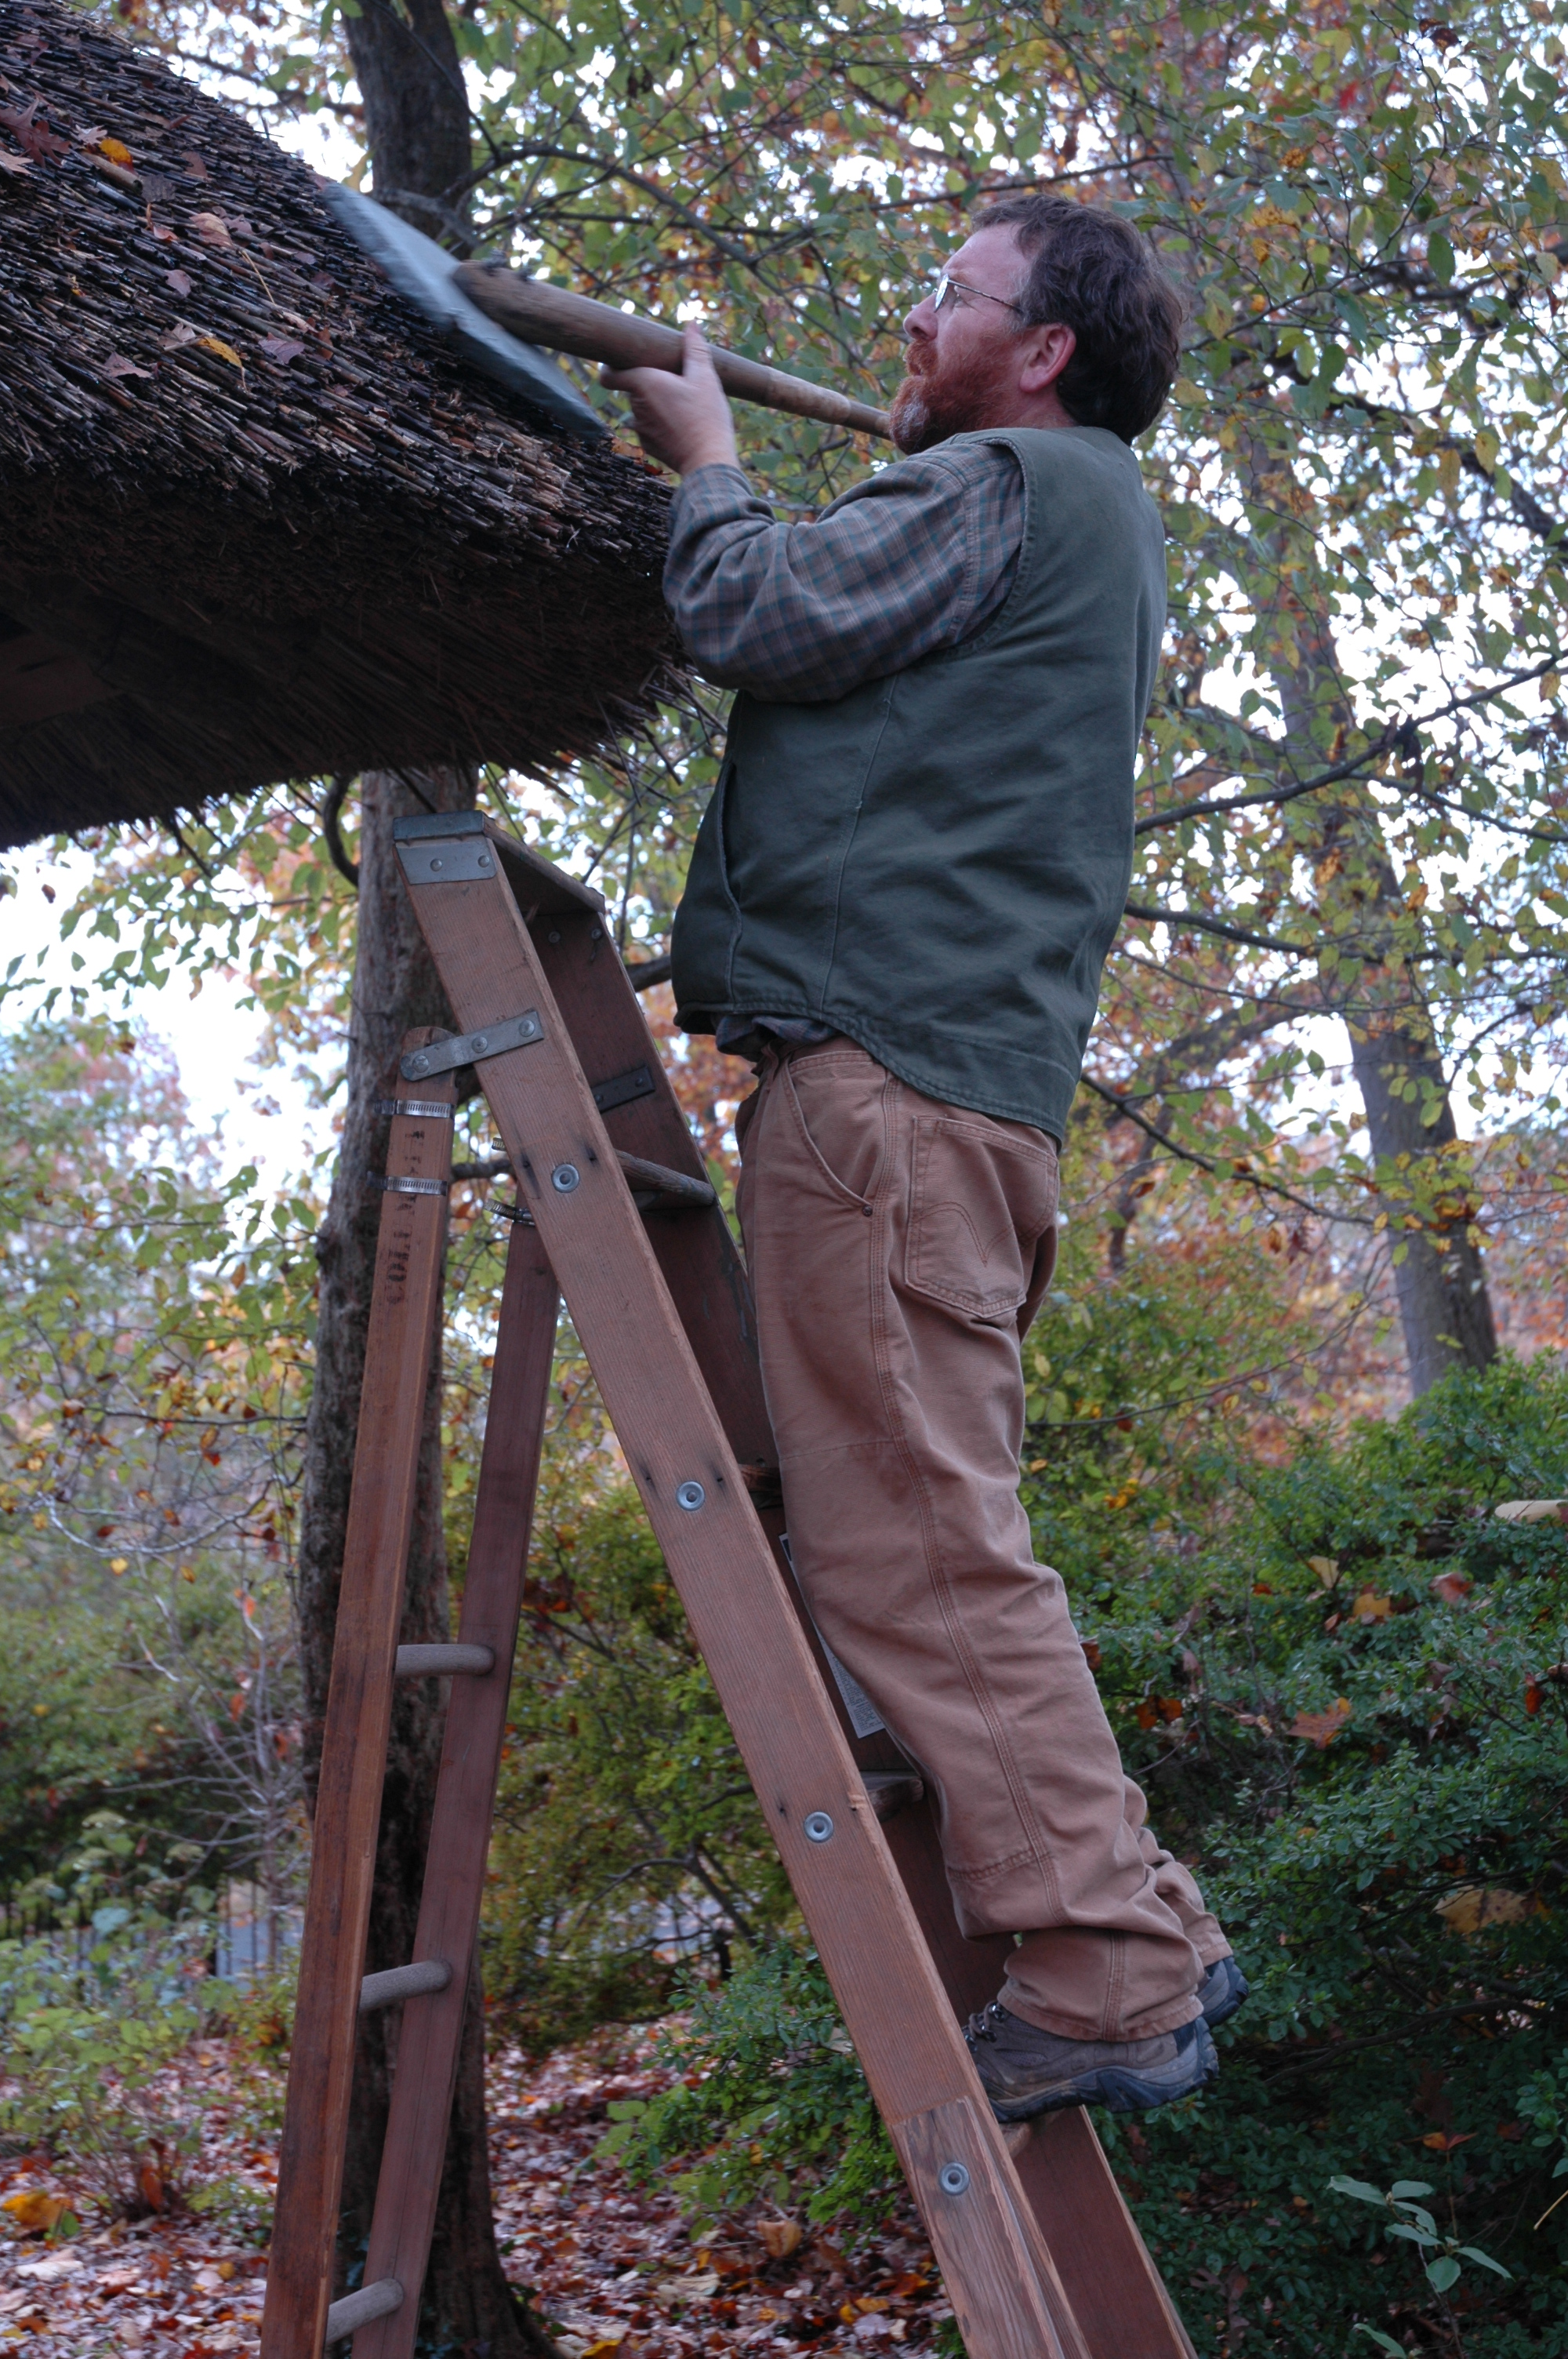 Thatching of Tulip-tree House in Enchanted Woods